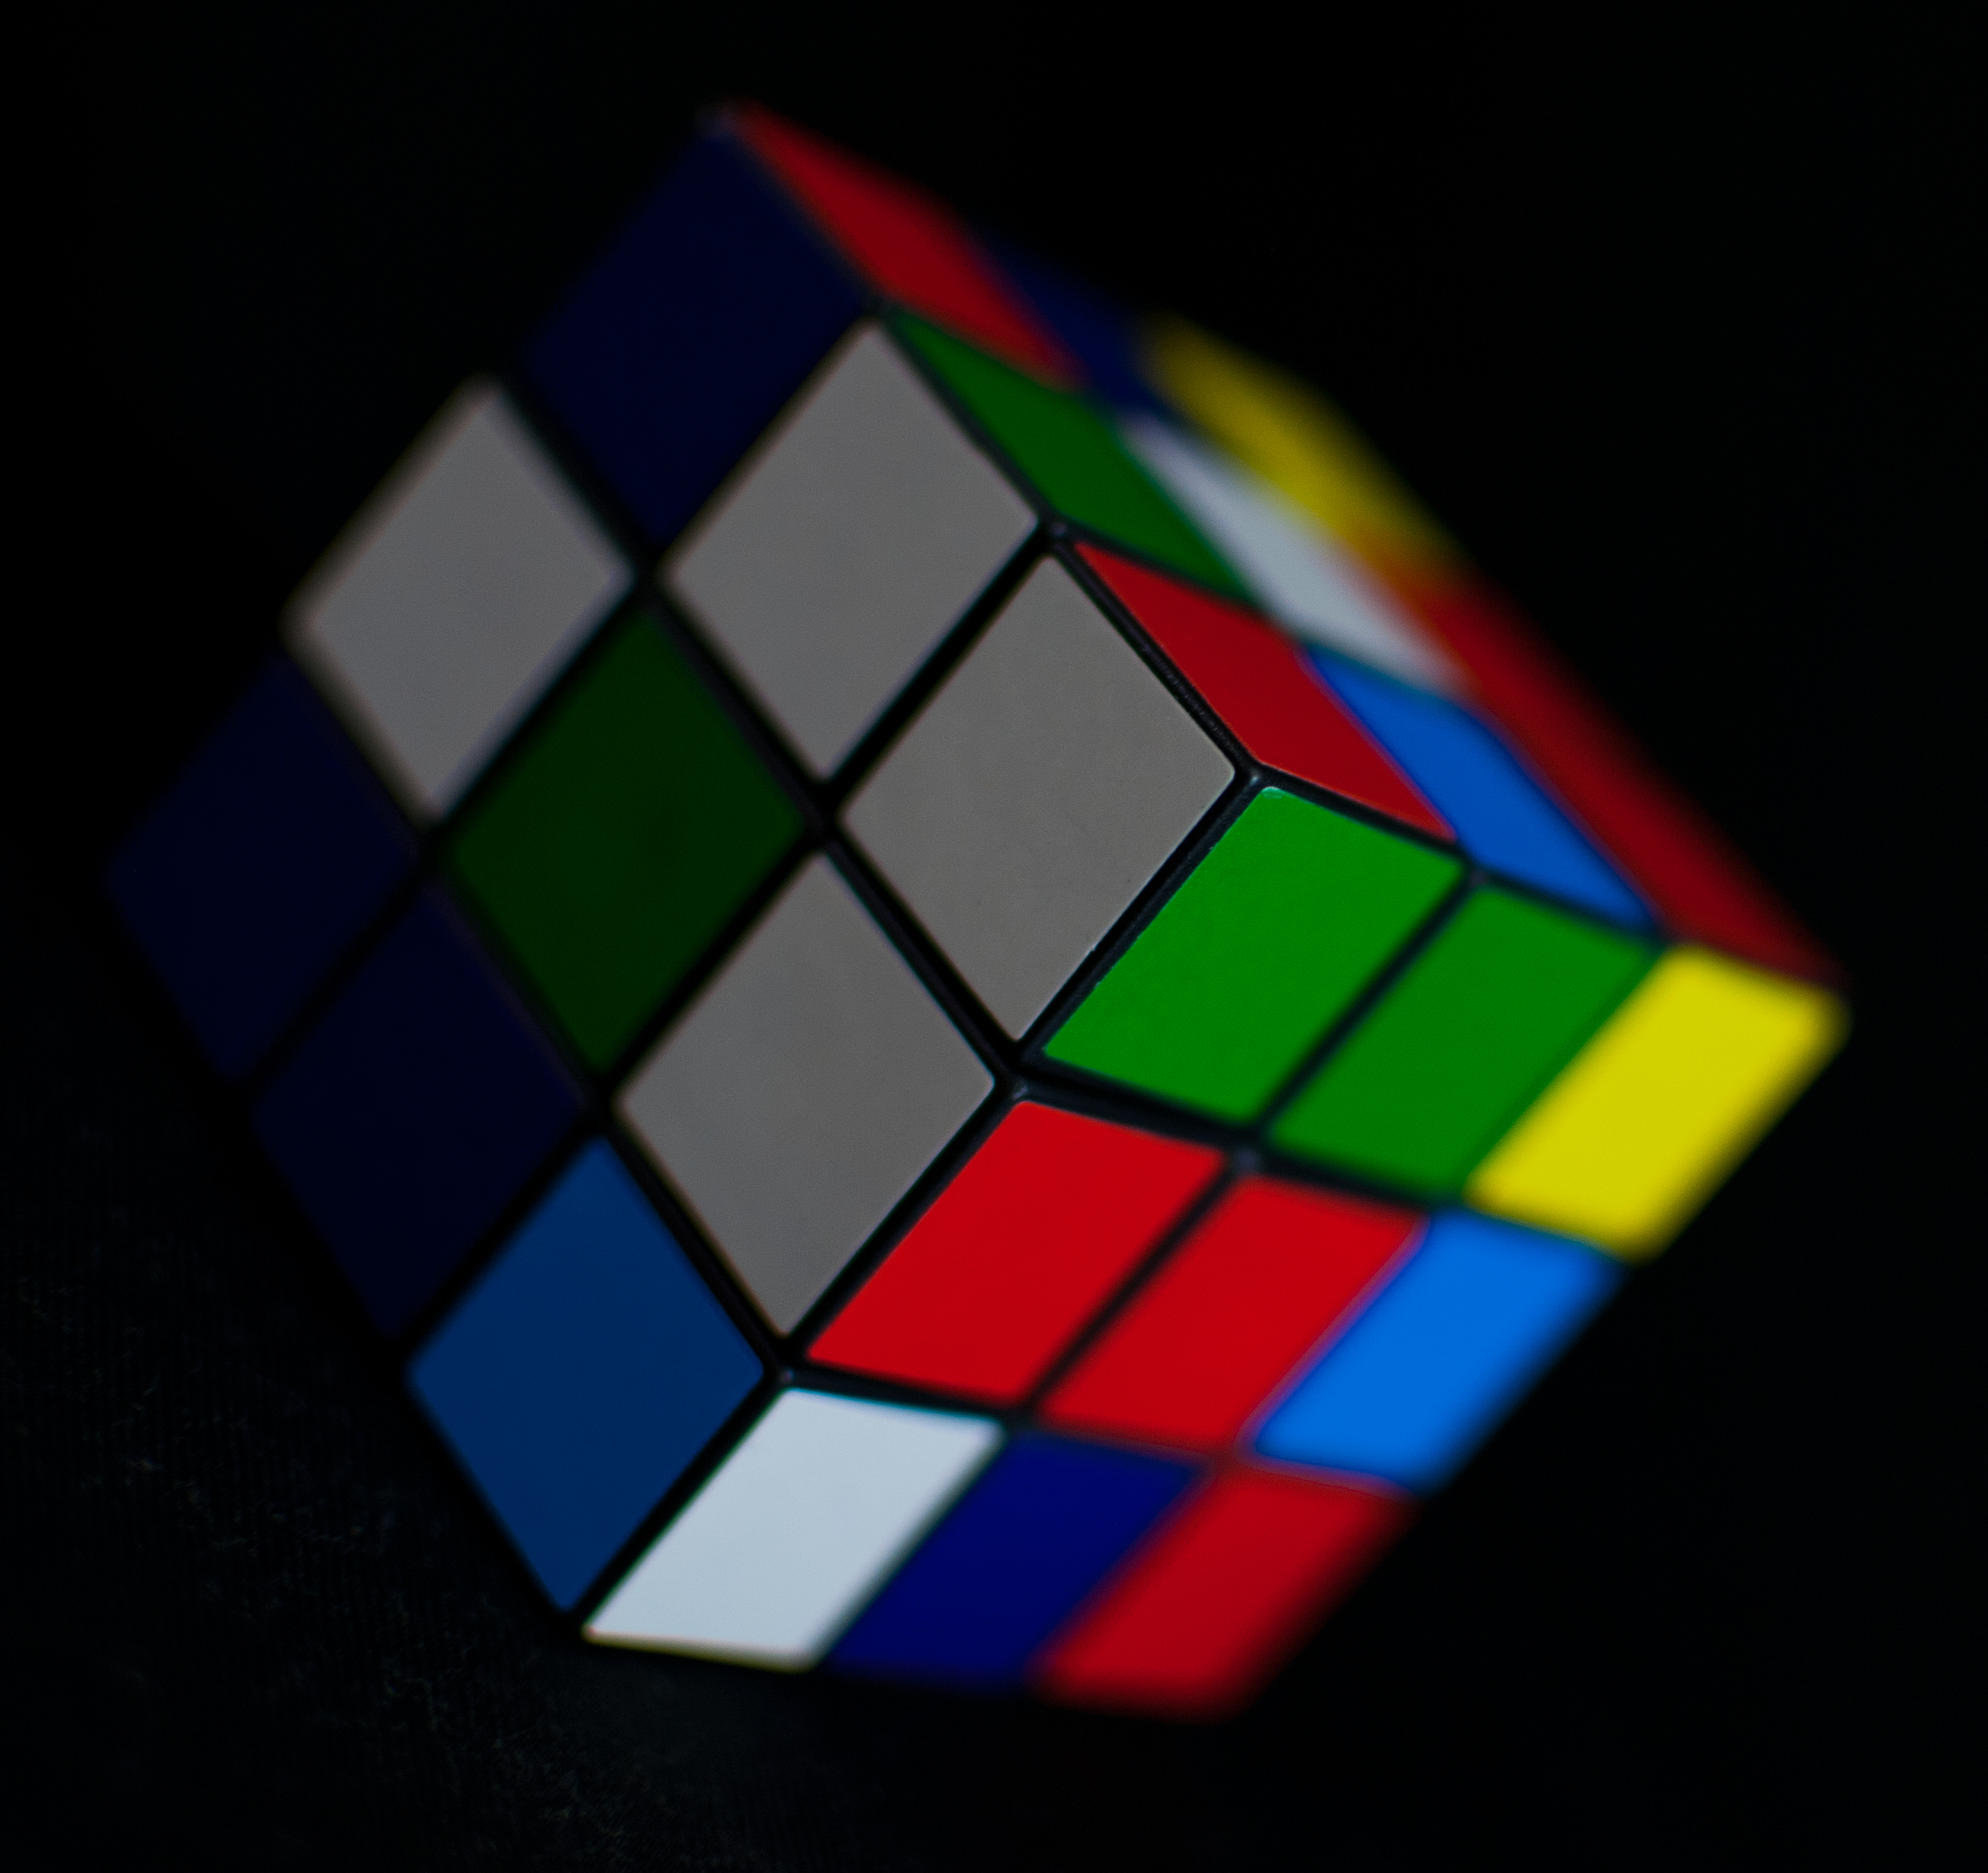 rubiks cube Stephen tsung-han sher7555500940 writ 340 - t th 9:30am.